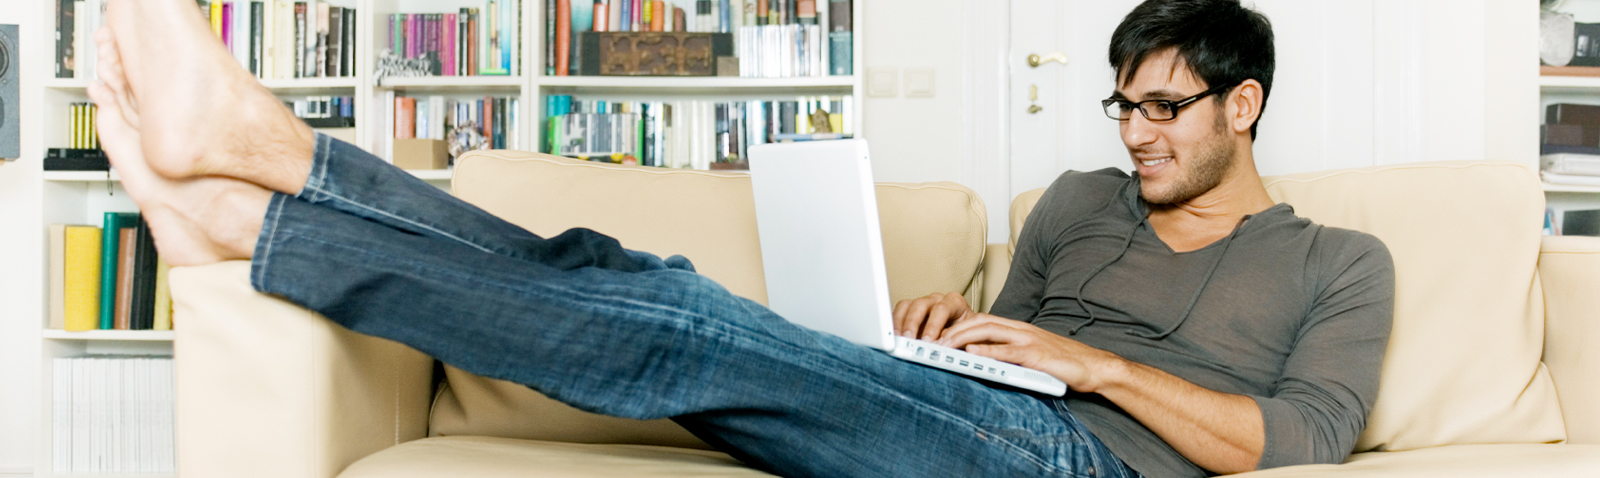 Person on couch checking laptop